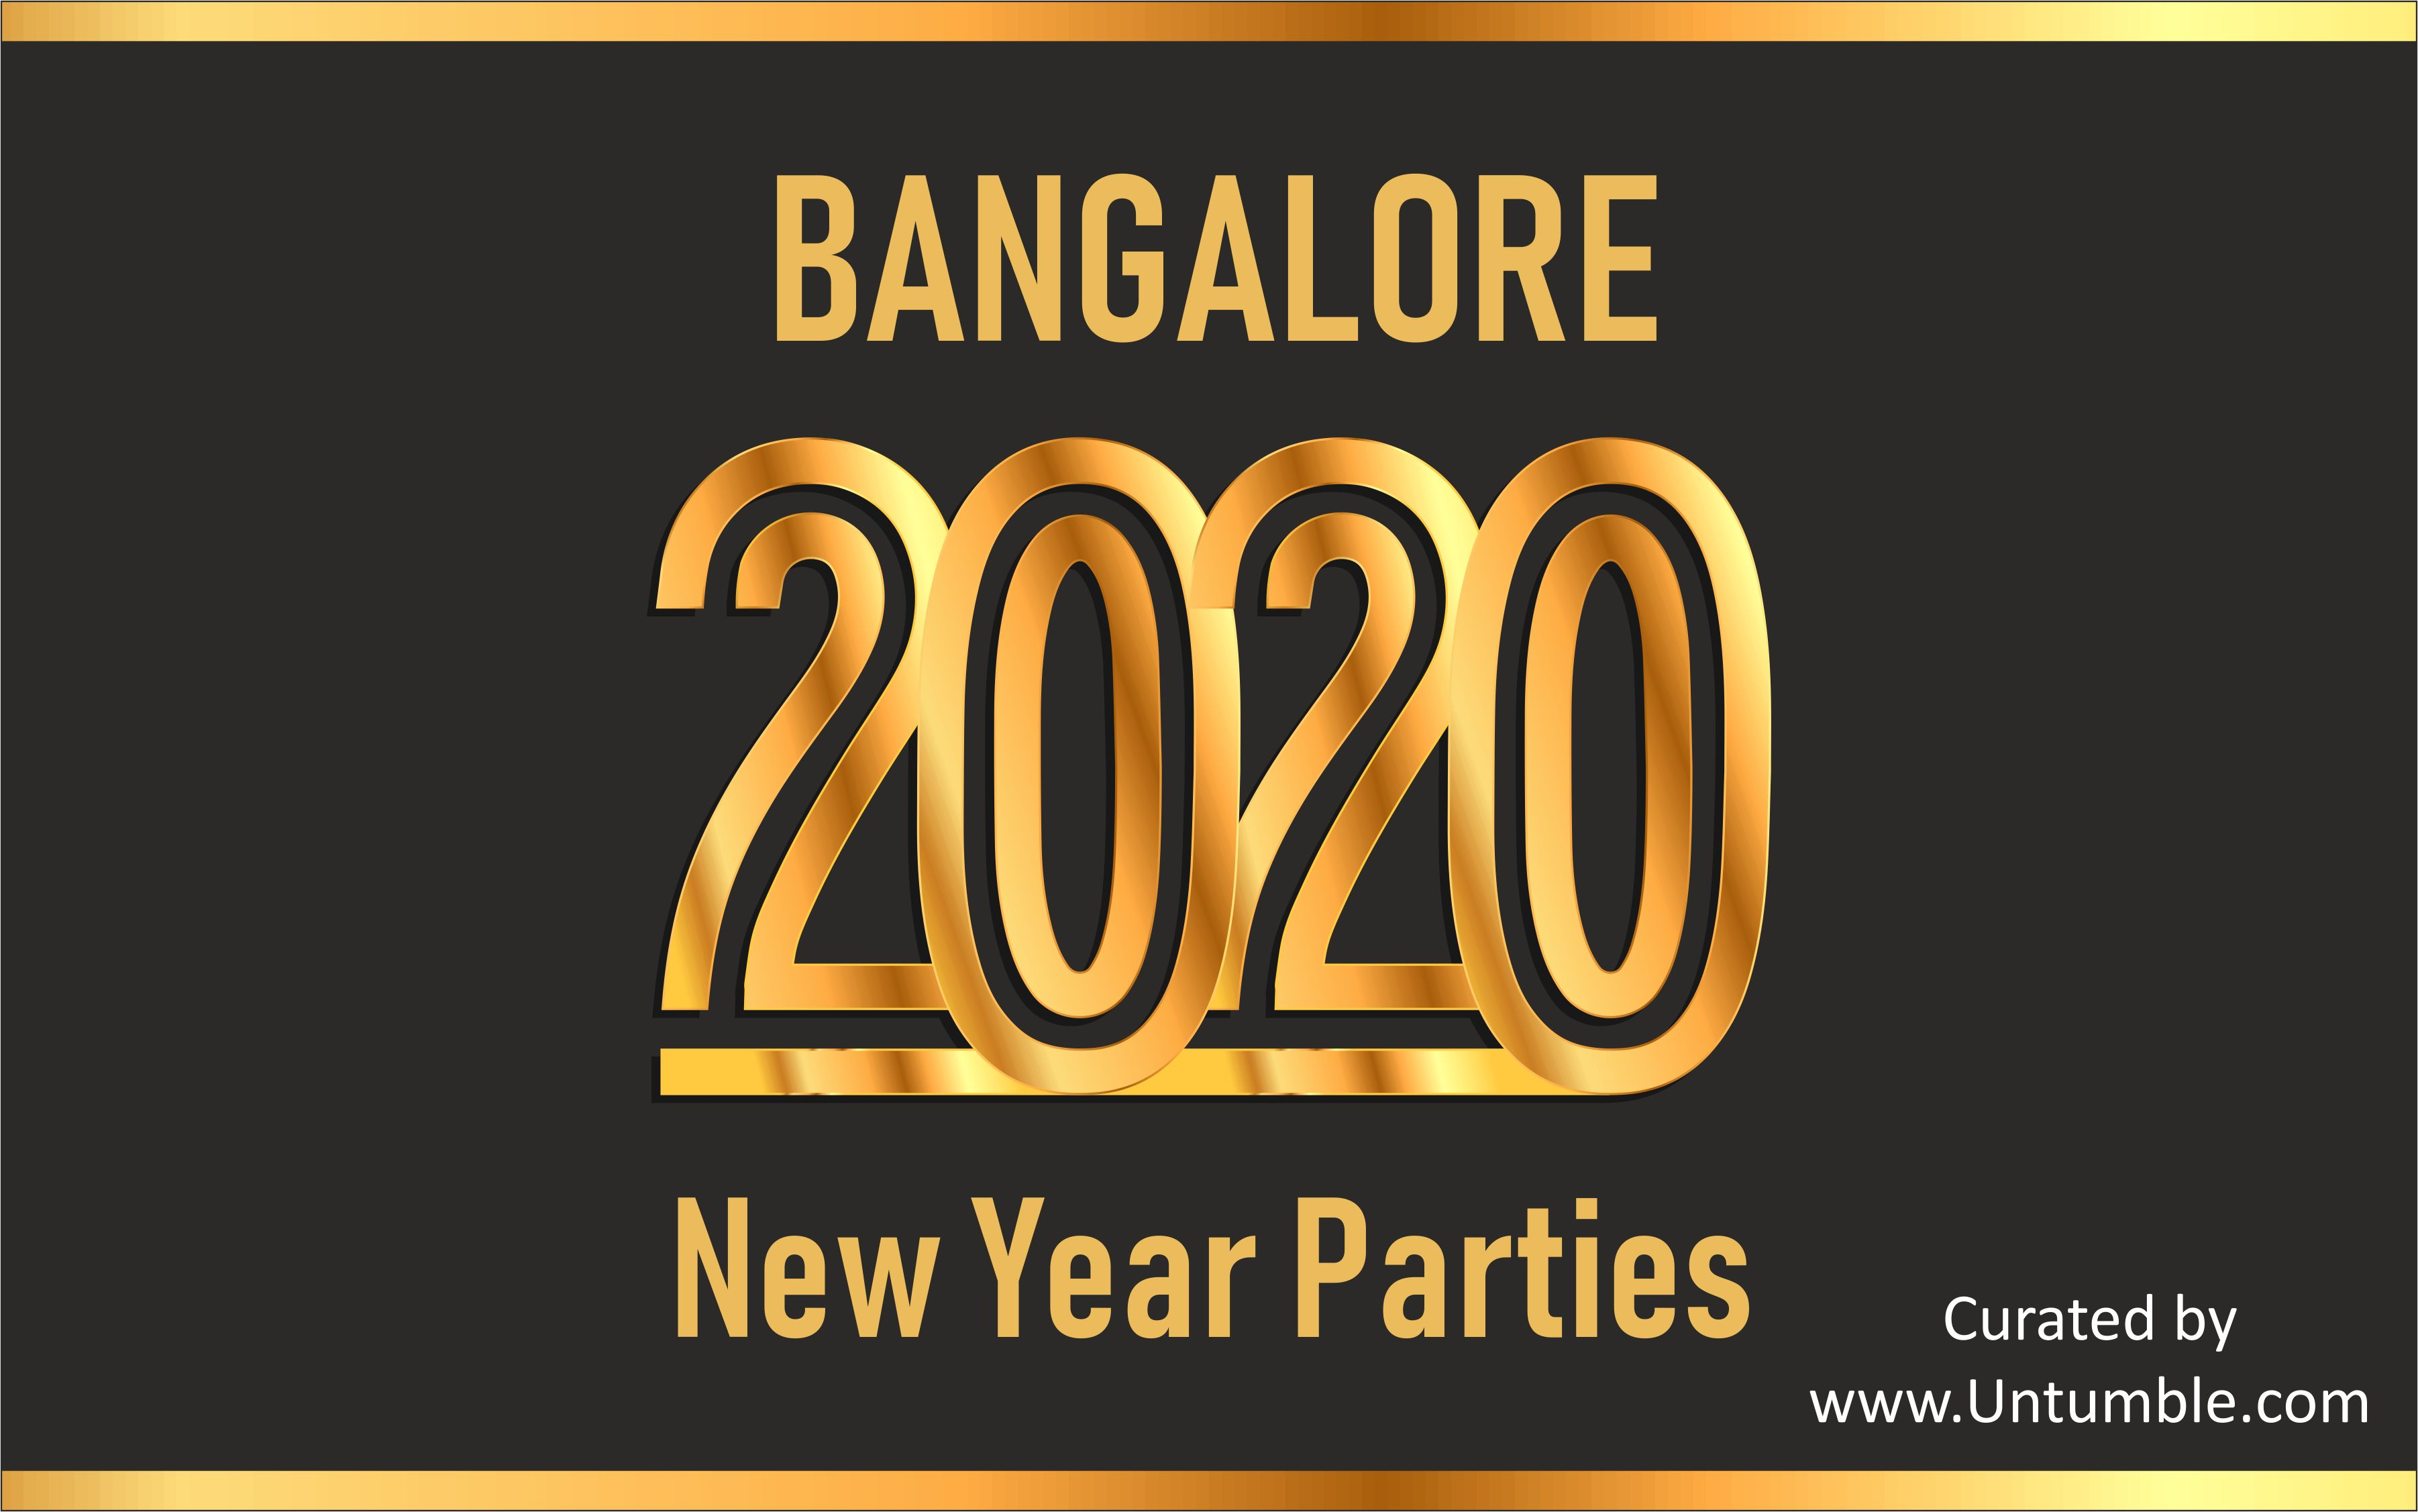 2020 New Year Parties in Bangalore